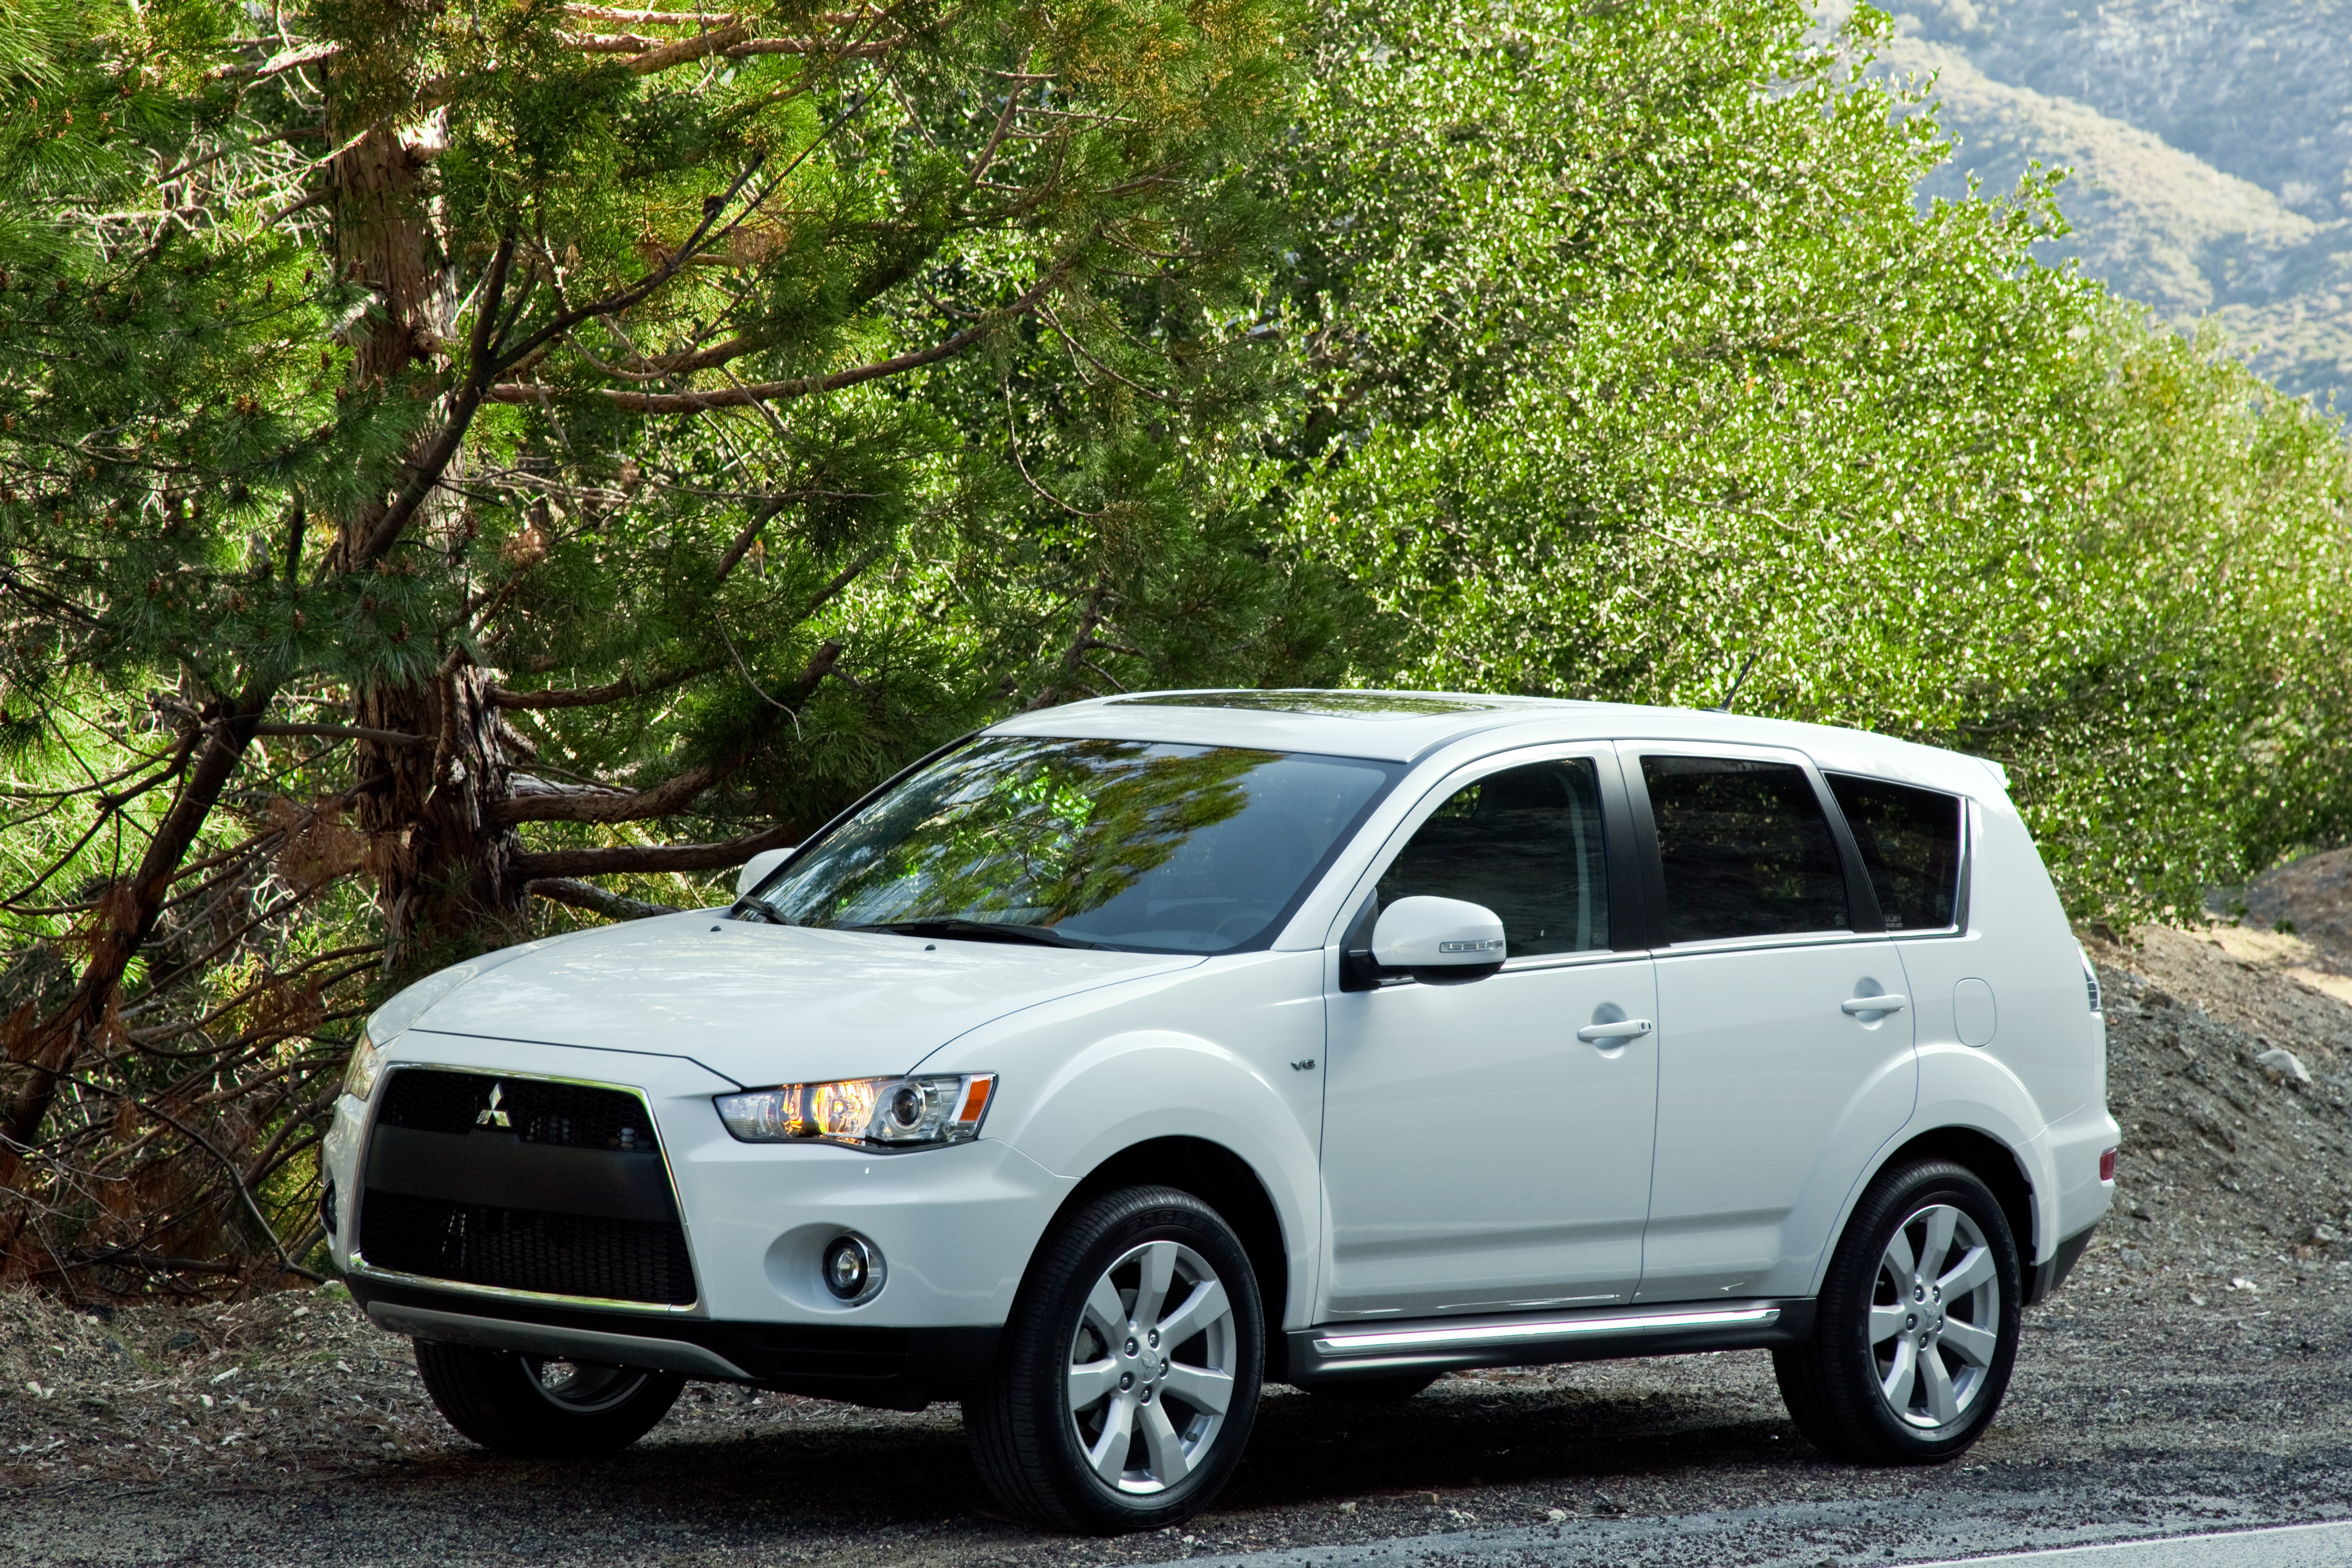 Every Model In The Mitsubishi Outlander Lineup Now Features Improved Epa Fuel Economy Ratings For The New  Model Year Outlander Xls Receives The